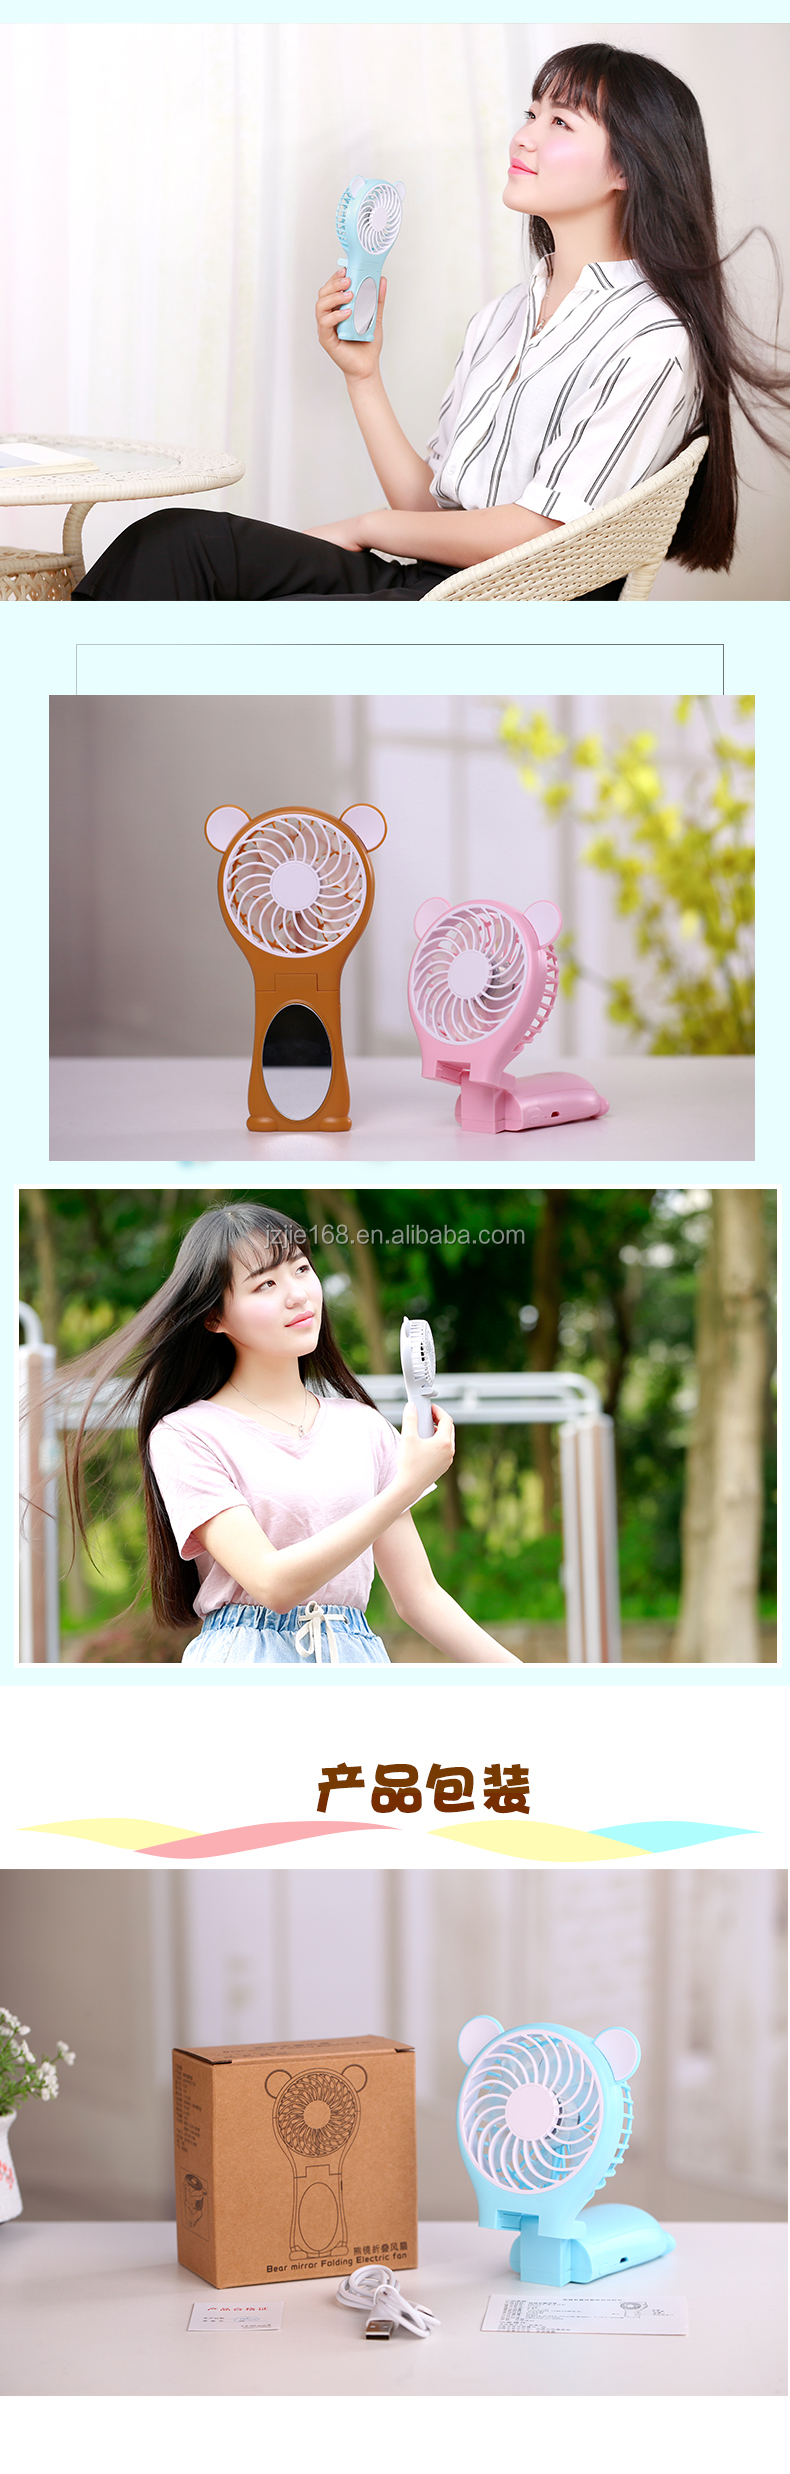 Summer Adorable Bear Style Mini Handheld Fan Rechargeable Portable USB Fan With Second Gear